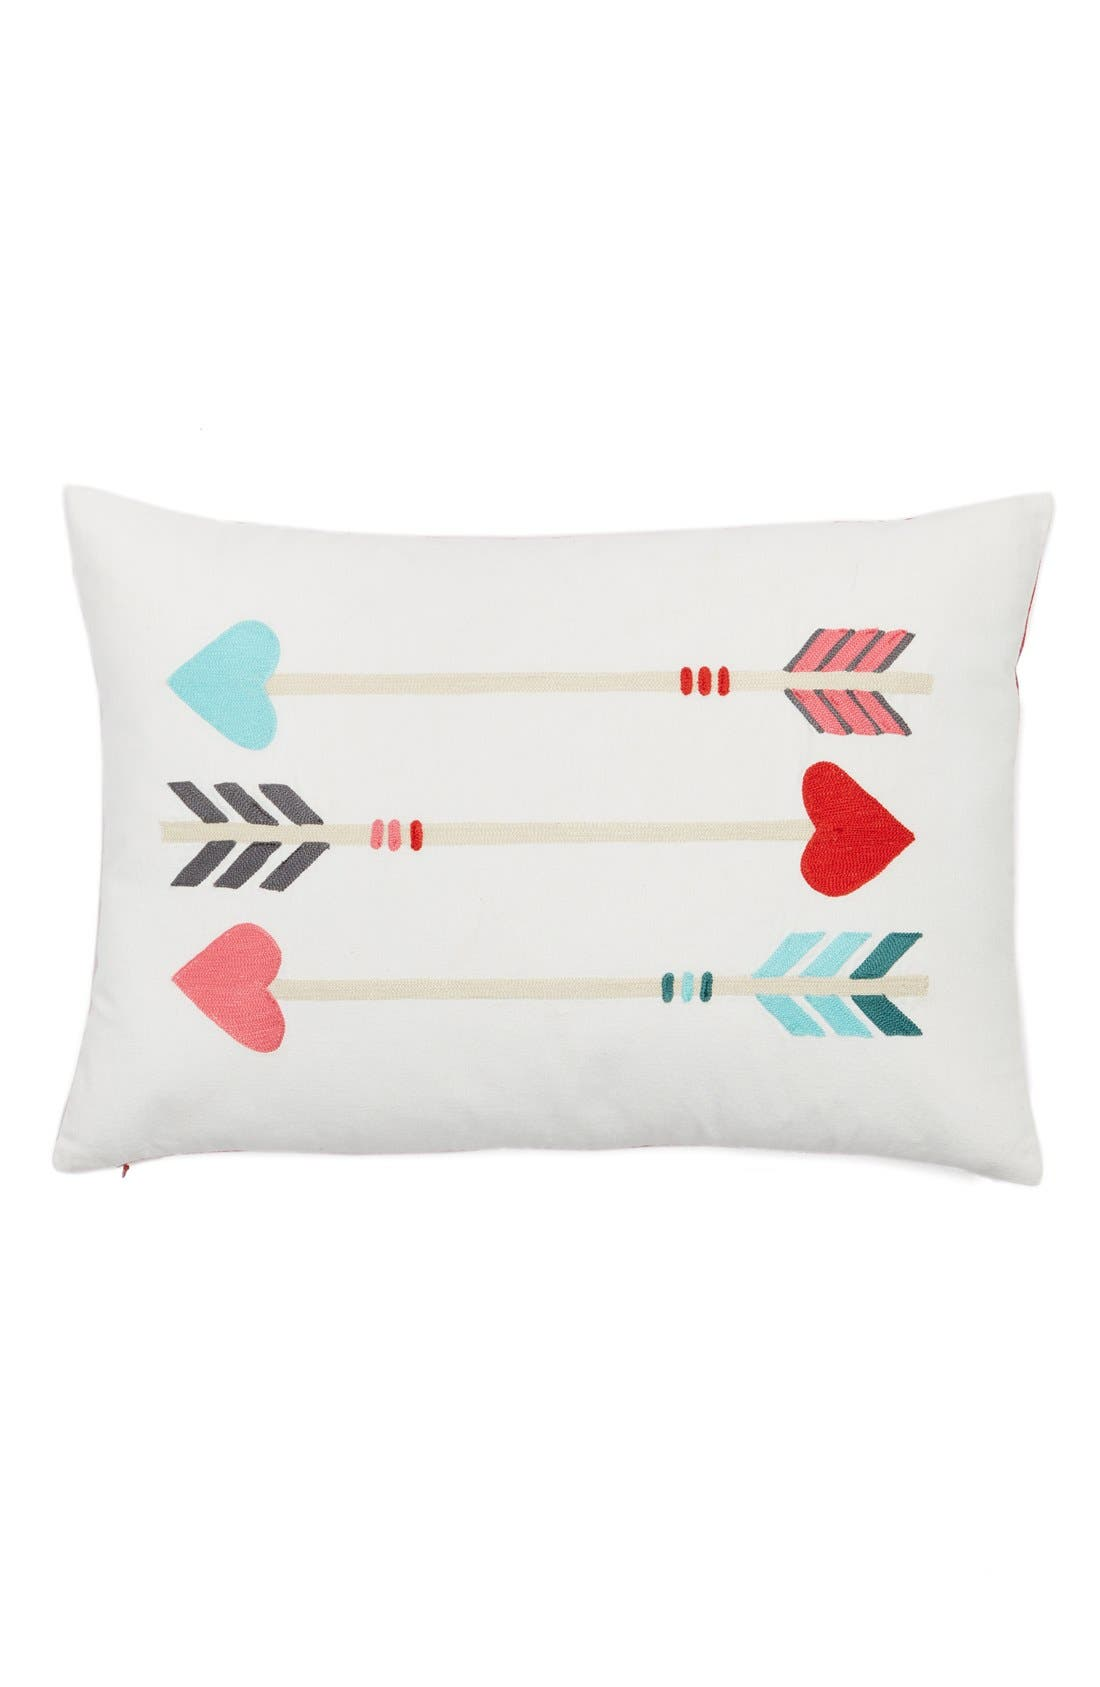 Alternate Image 1 Selected - Nordstrom at Home 'Arrows' Pillow